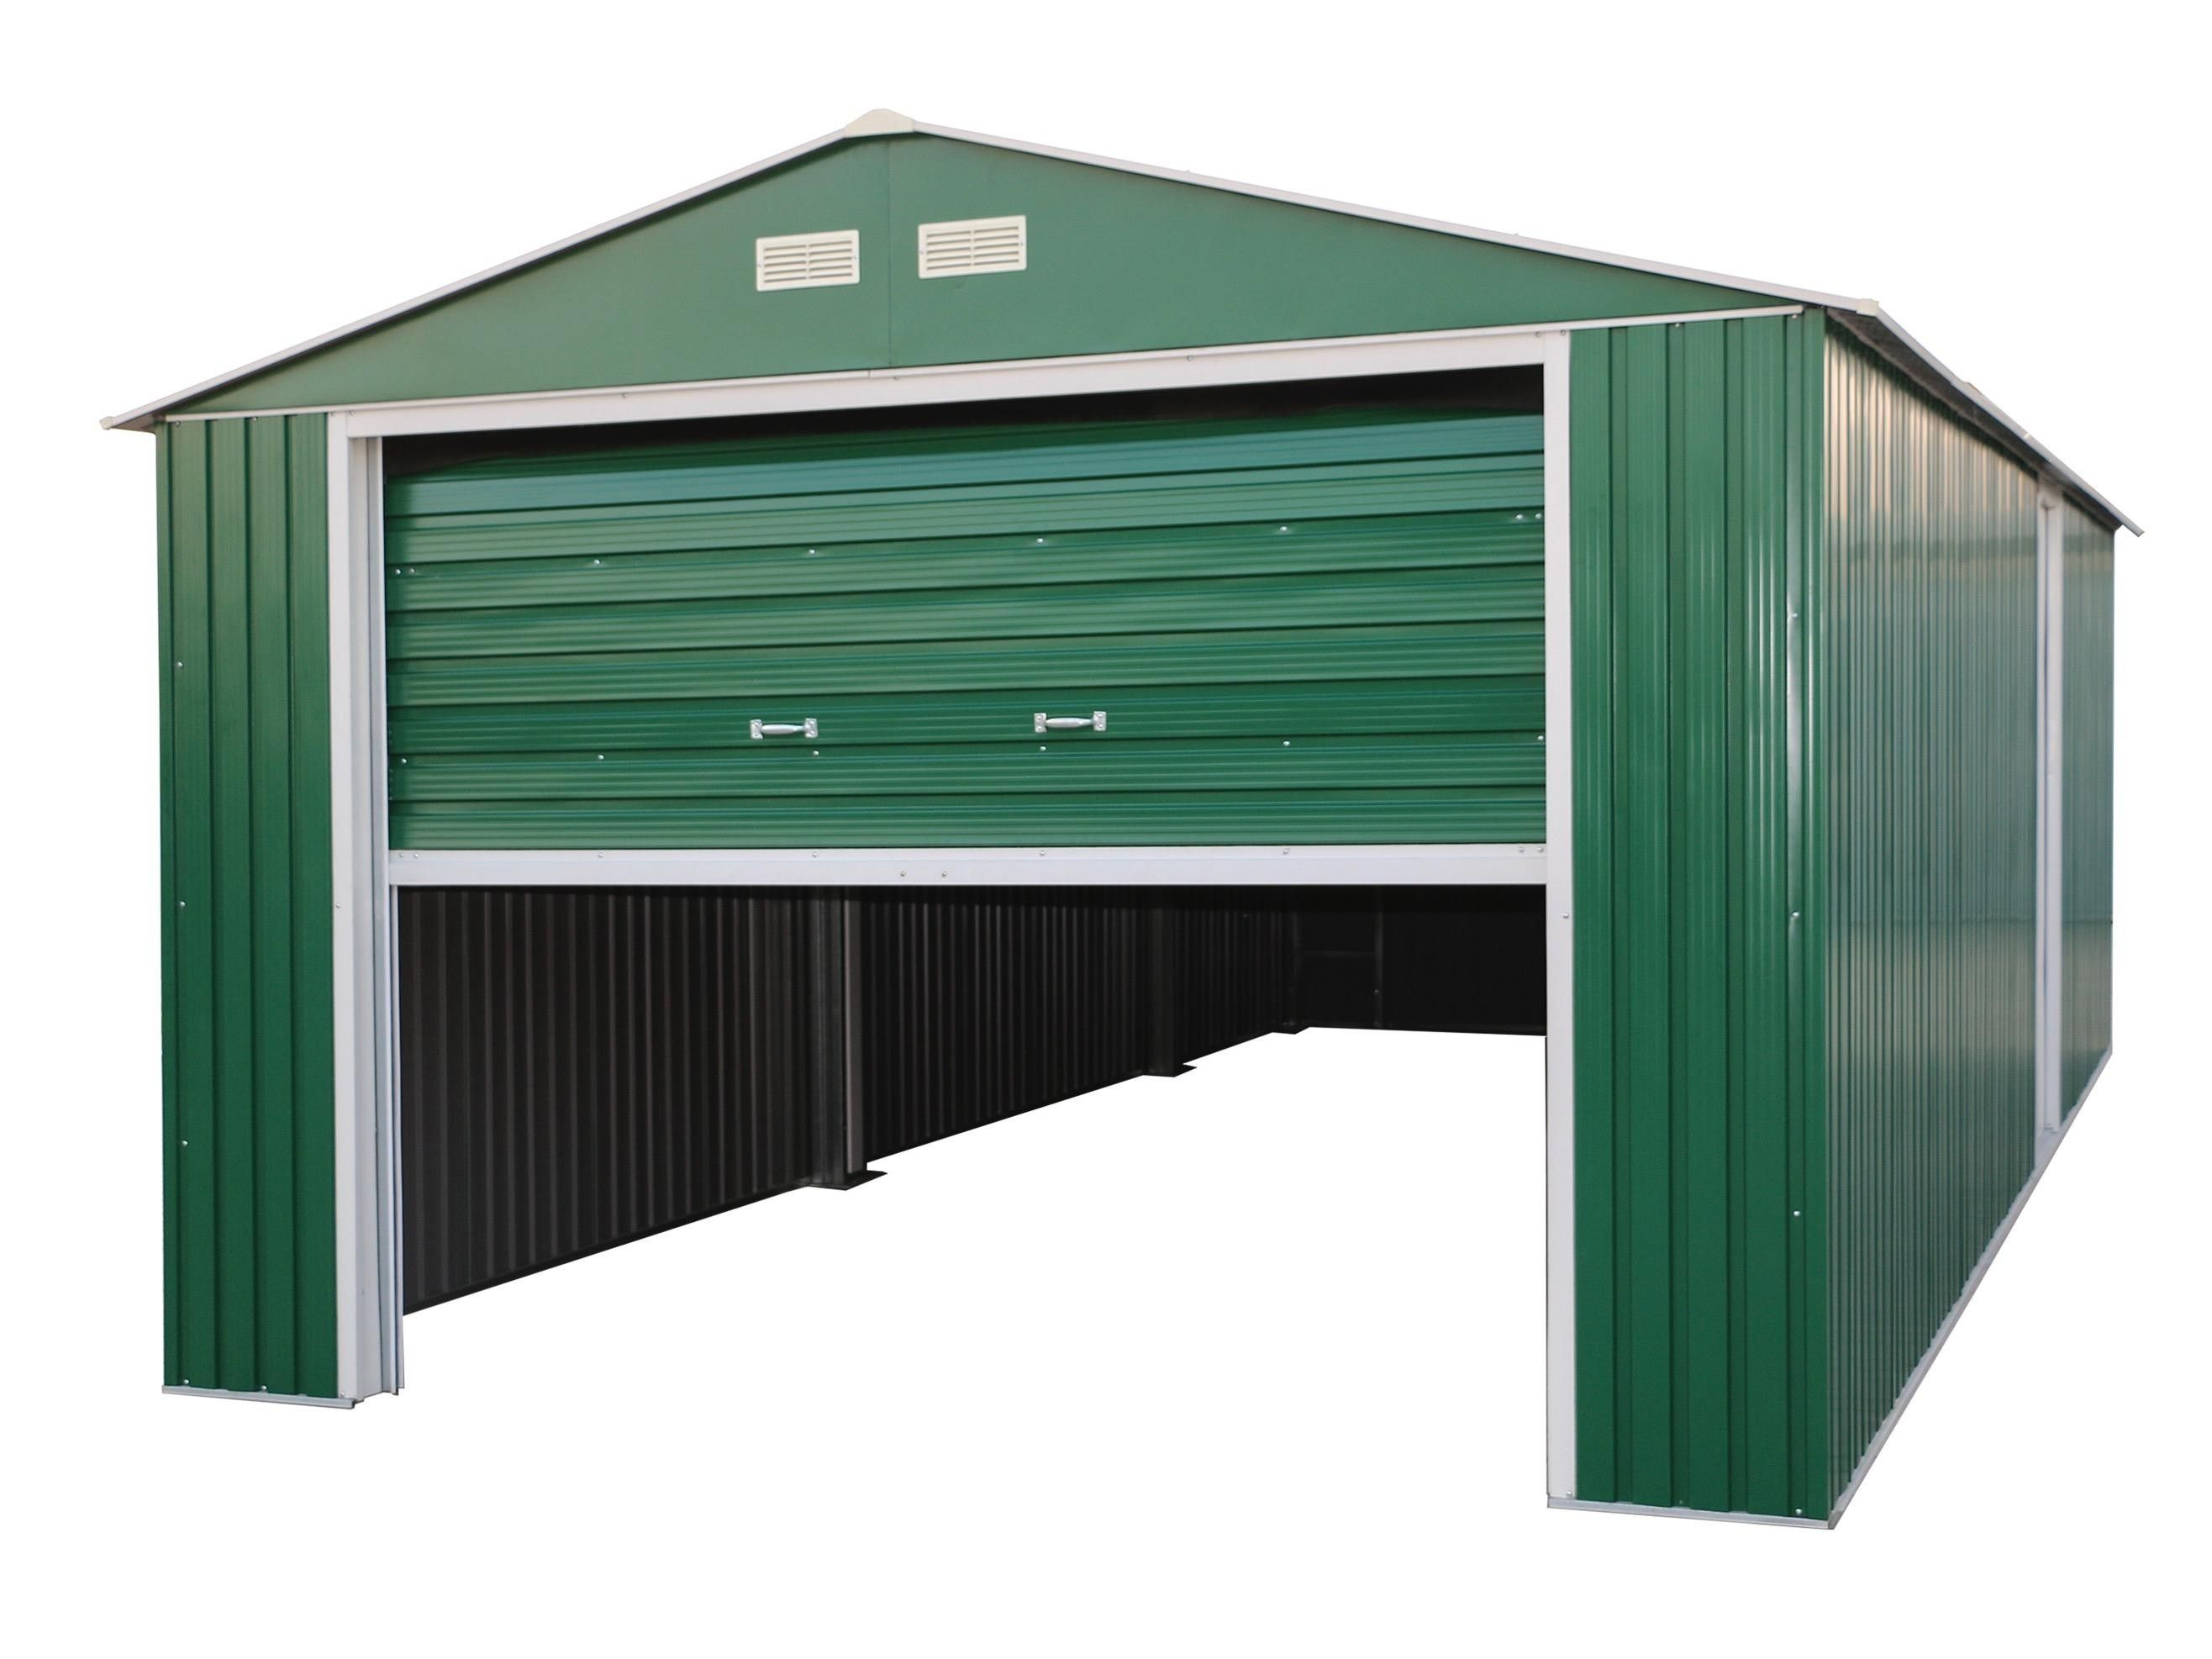 Duramax Olympian 12x38 Apex Roof Metal Garage Metal Garages Rubbermaid Storage Shed Metal Storage Garage